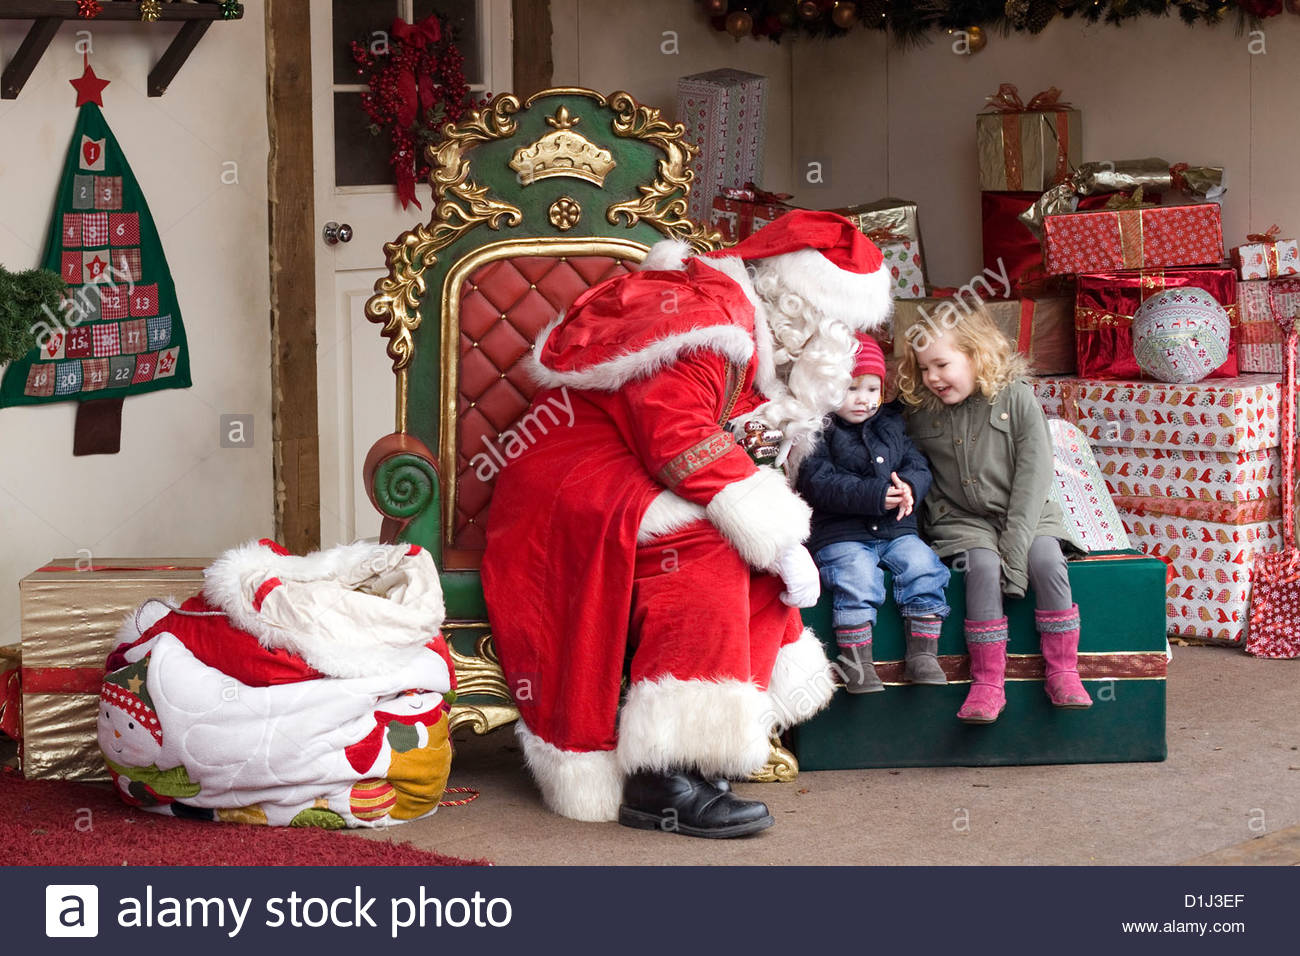 Father Christmas Giving Presents To Children In Santas Grotto London England